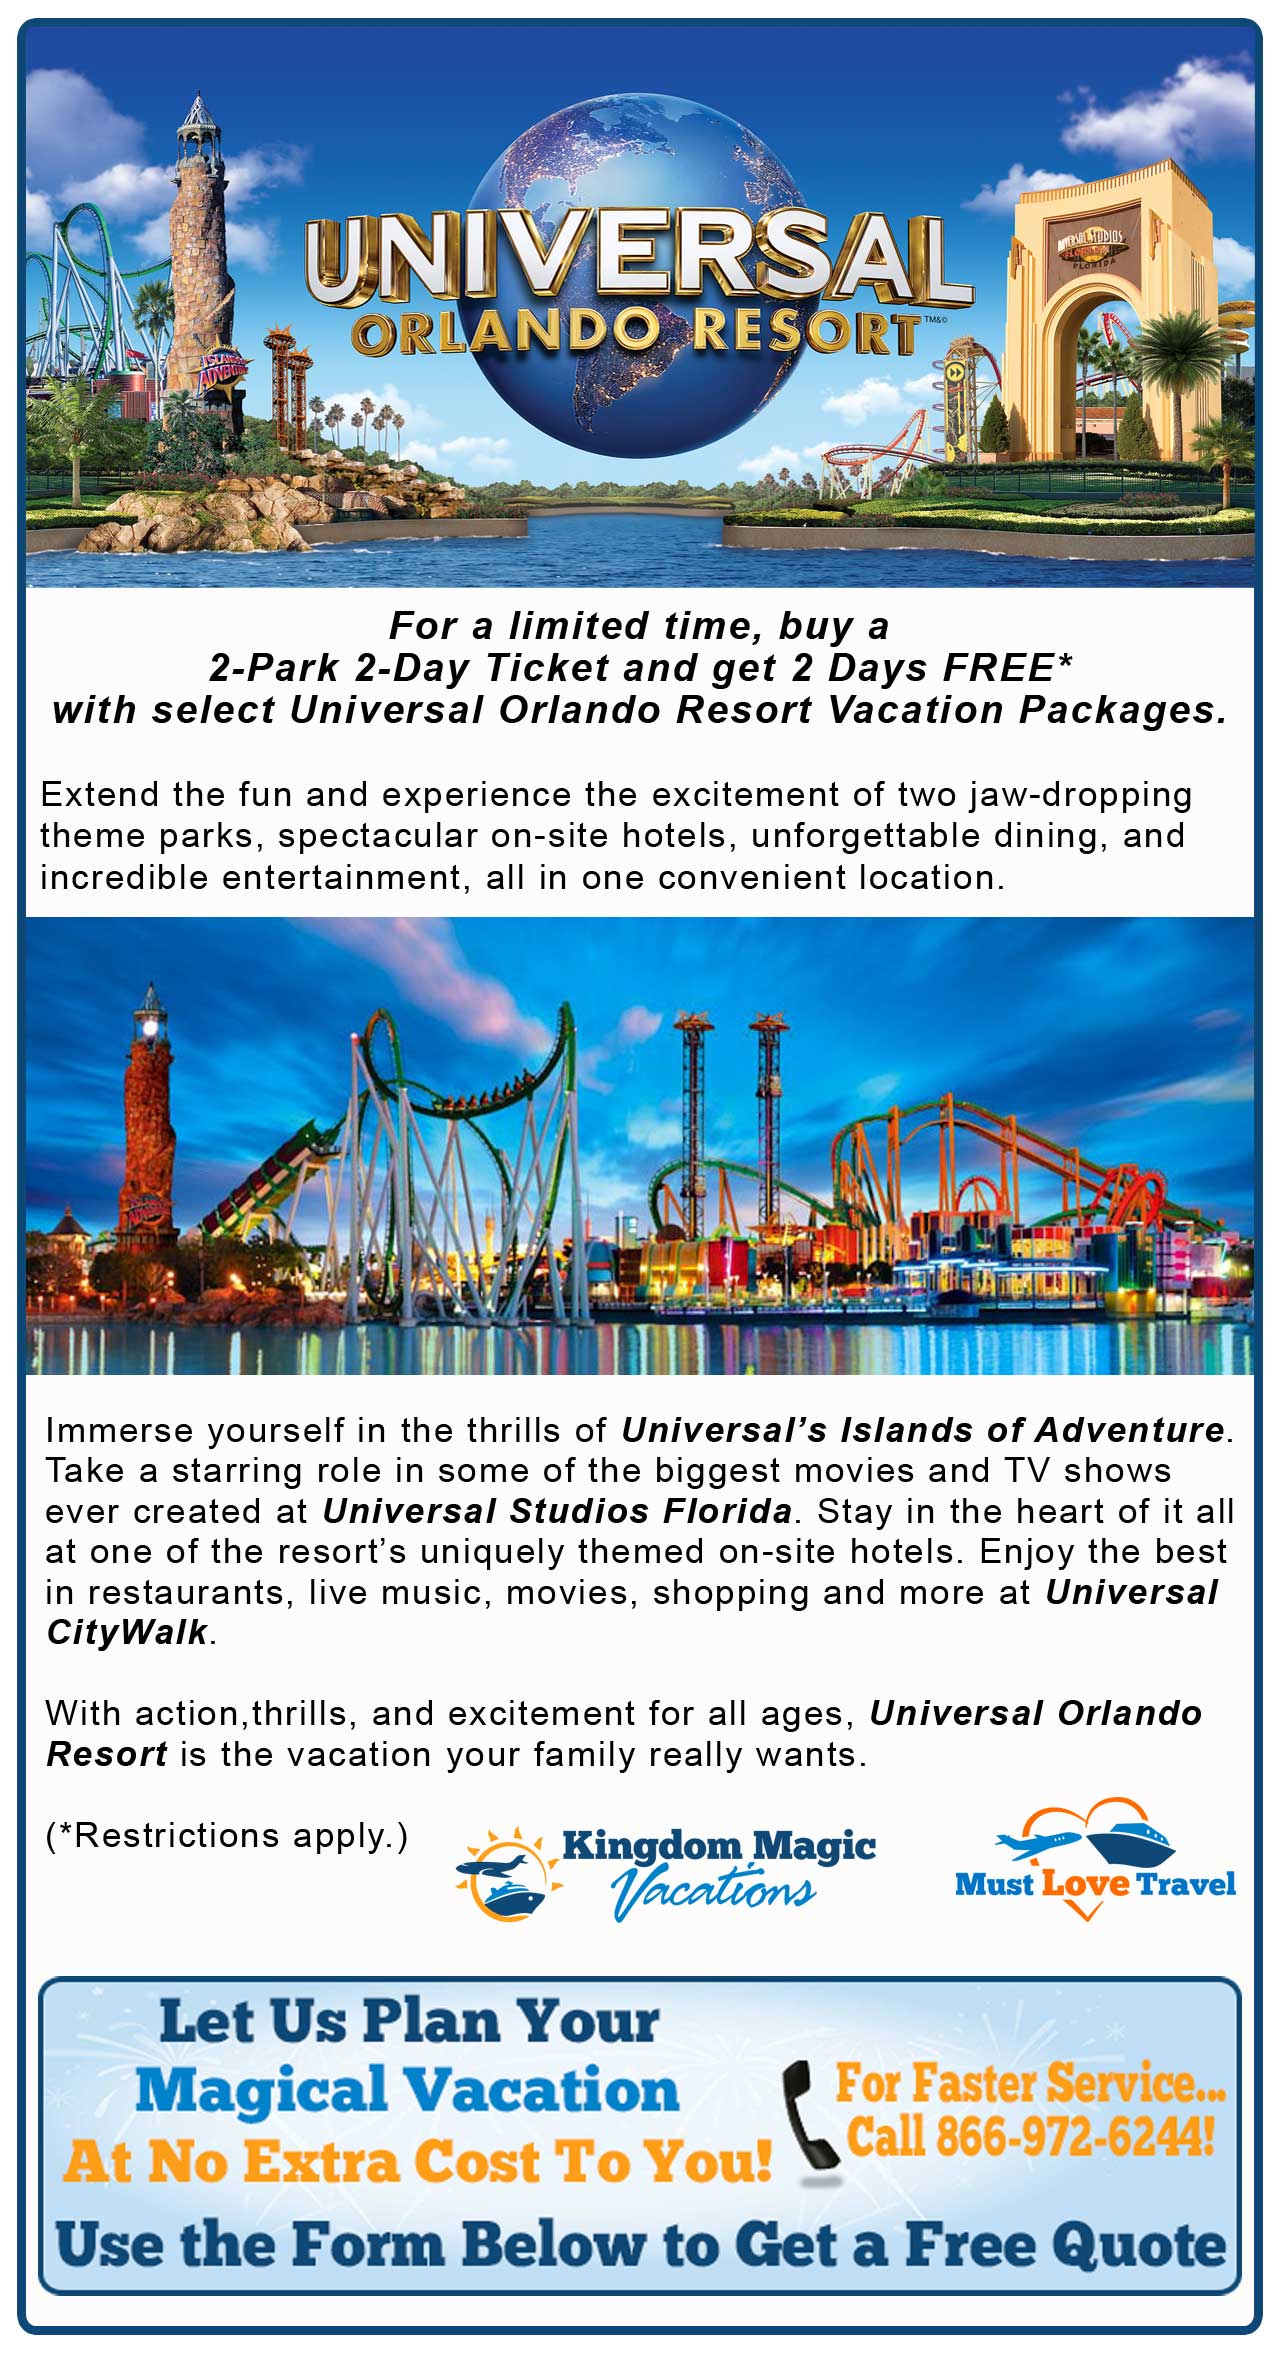 For a limited time, buy a 2-Park 2-Day Ticket and get 2 Days FREE* with select Universal Orlando ResortTM Vacation Packages. With jaw-dropping theme parks, spectacular on-site resort hotels, and unforgettable dining and entertainment, Universal OrlandoTM is the vacation your family really wants.